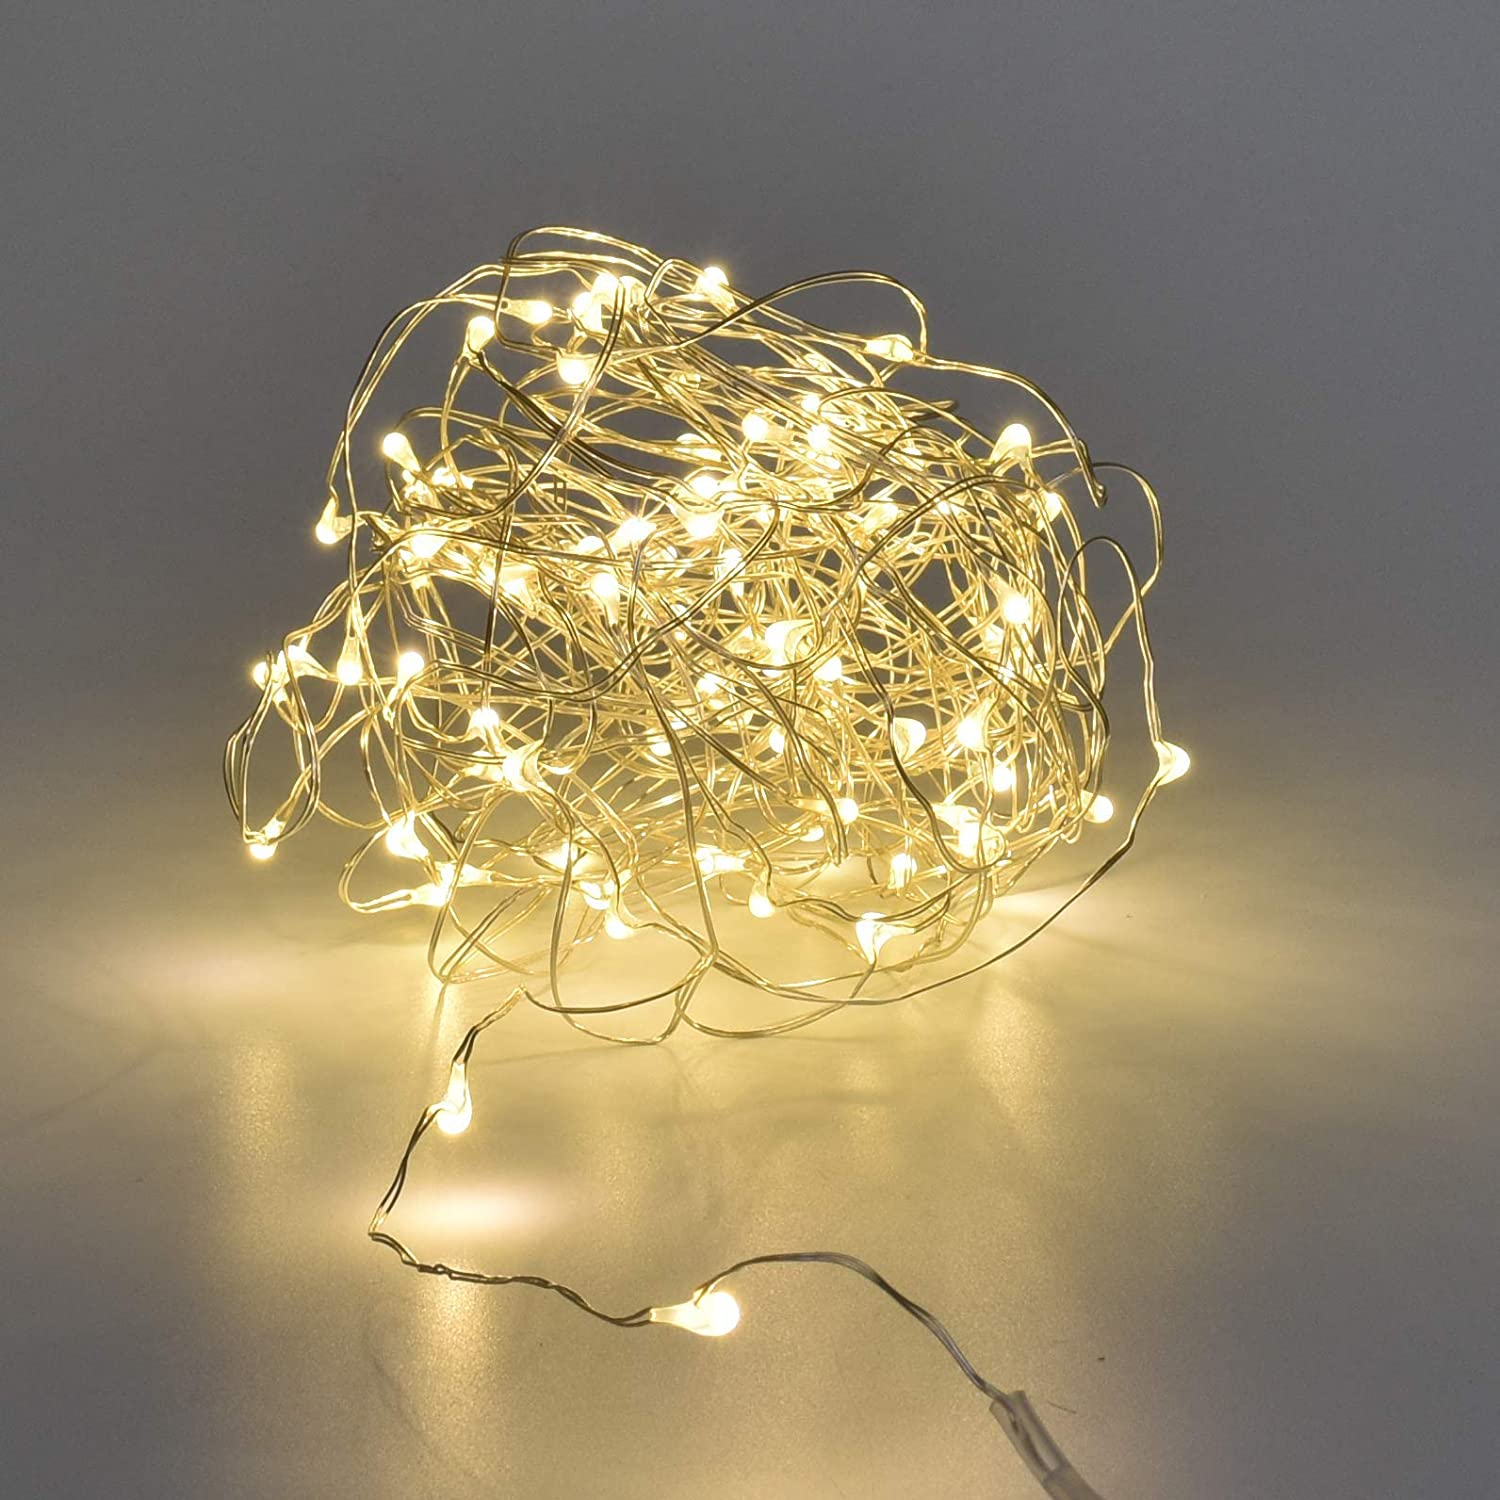 Karlling USB Plug in LED Fairy Lights,50 LED Bulbs 16 Ft Silver Wire Waterproof Starry String Lights for Bedroom Patio Garden Party Wedding Commercial Lighting Warm White